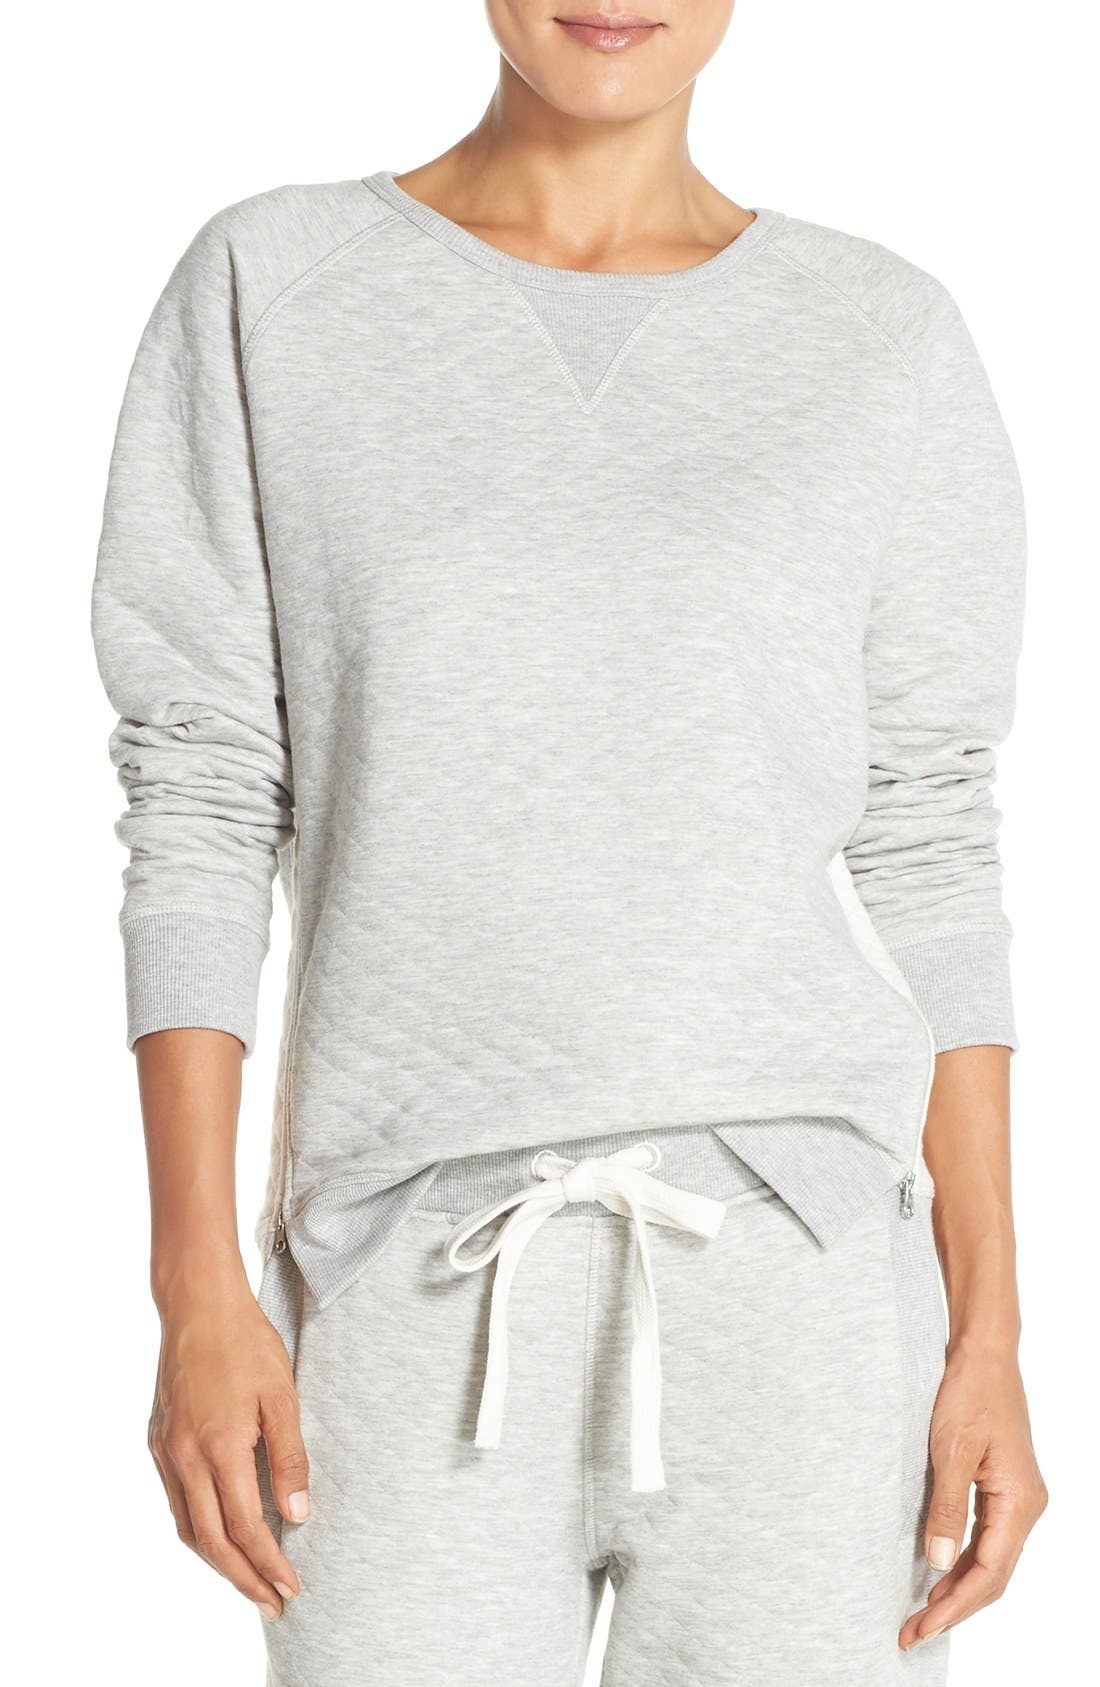 DANIEL BUCHLER Quilted Cotton Sweatshirt, Main, color, 020